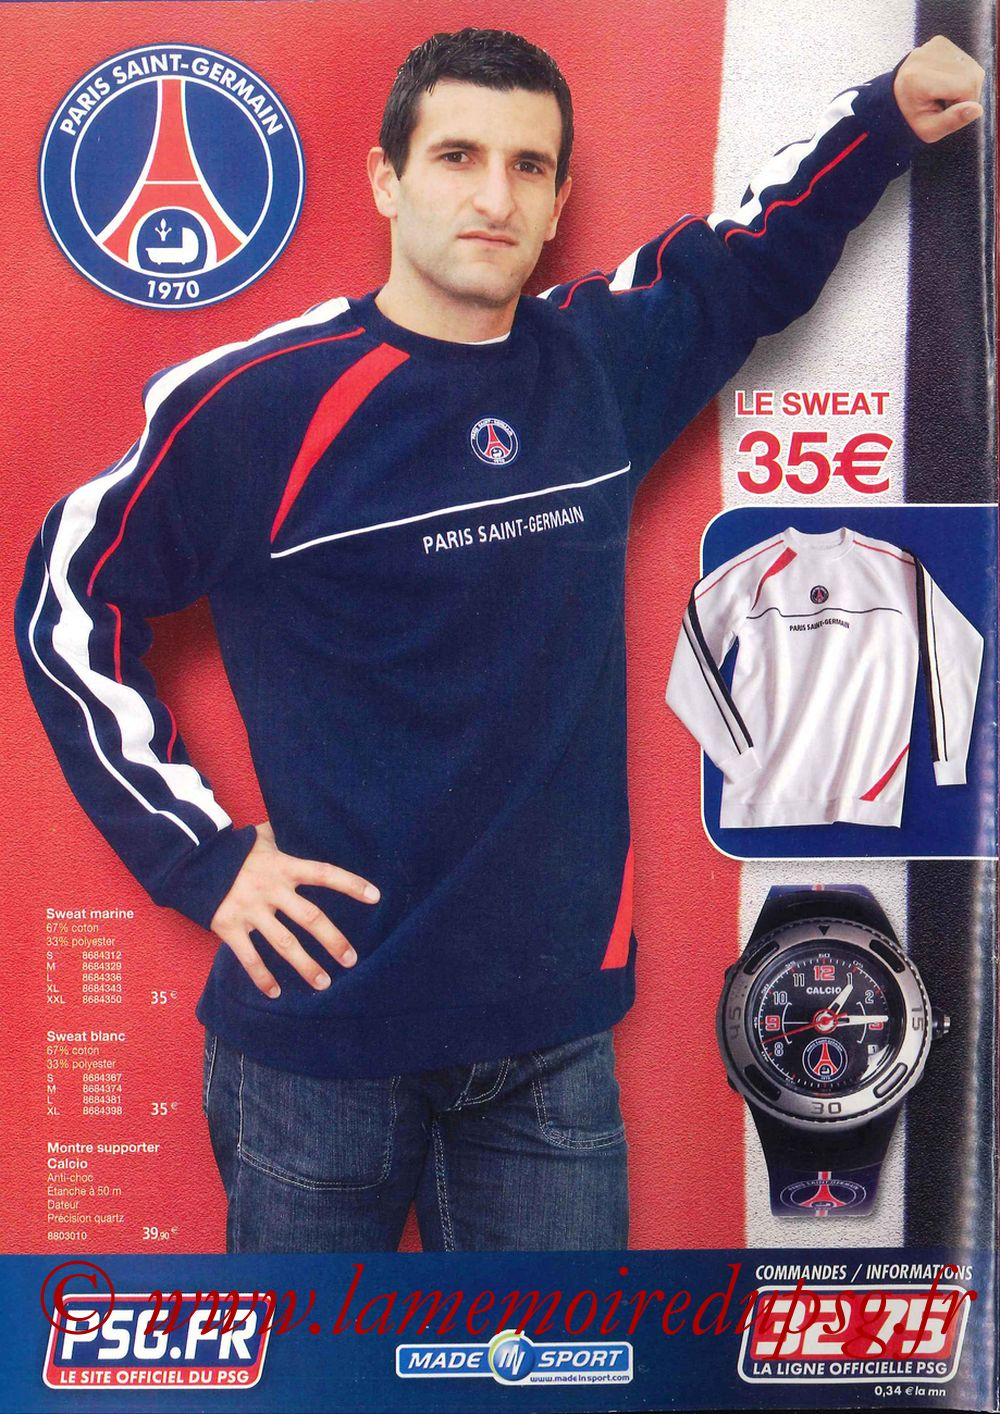 Catalogue PSG - 2006-07 - Page 24